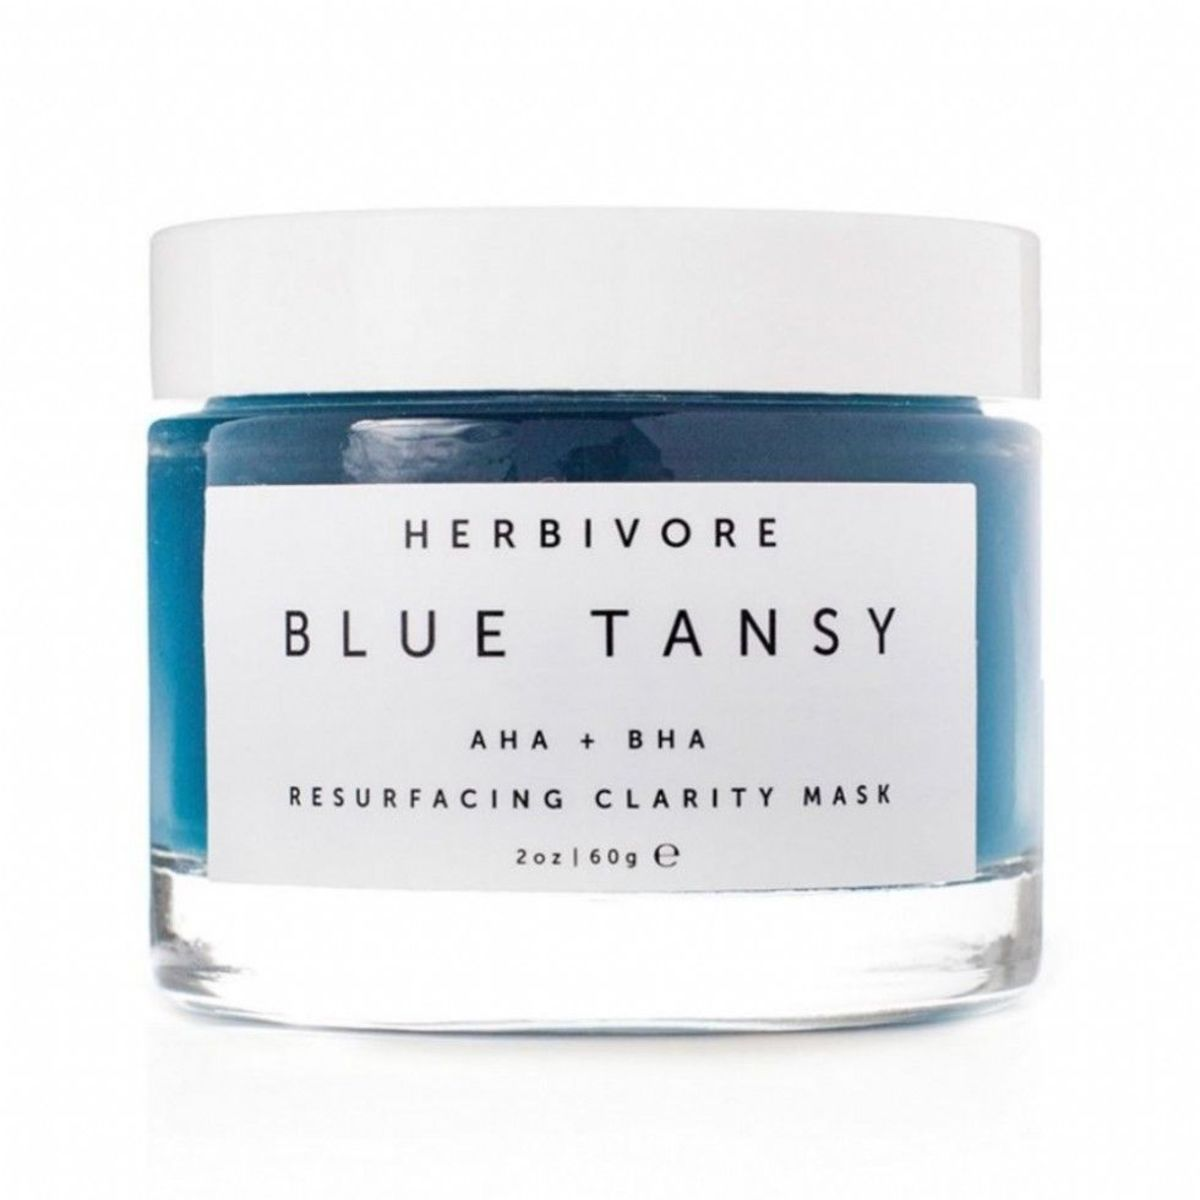 Blue Tansy Resurfacing Clarity Mask, $48, available here.